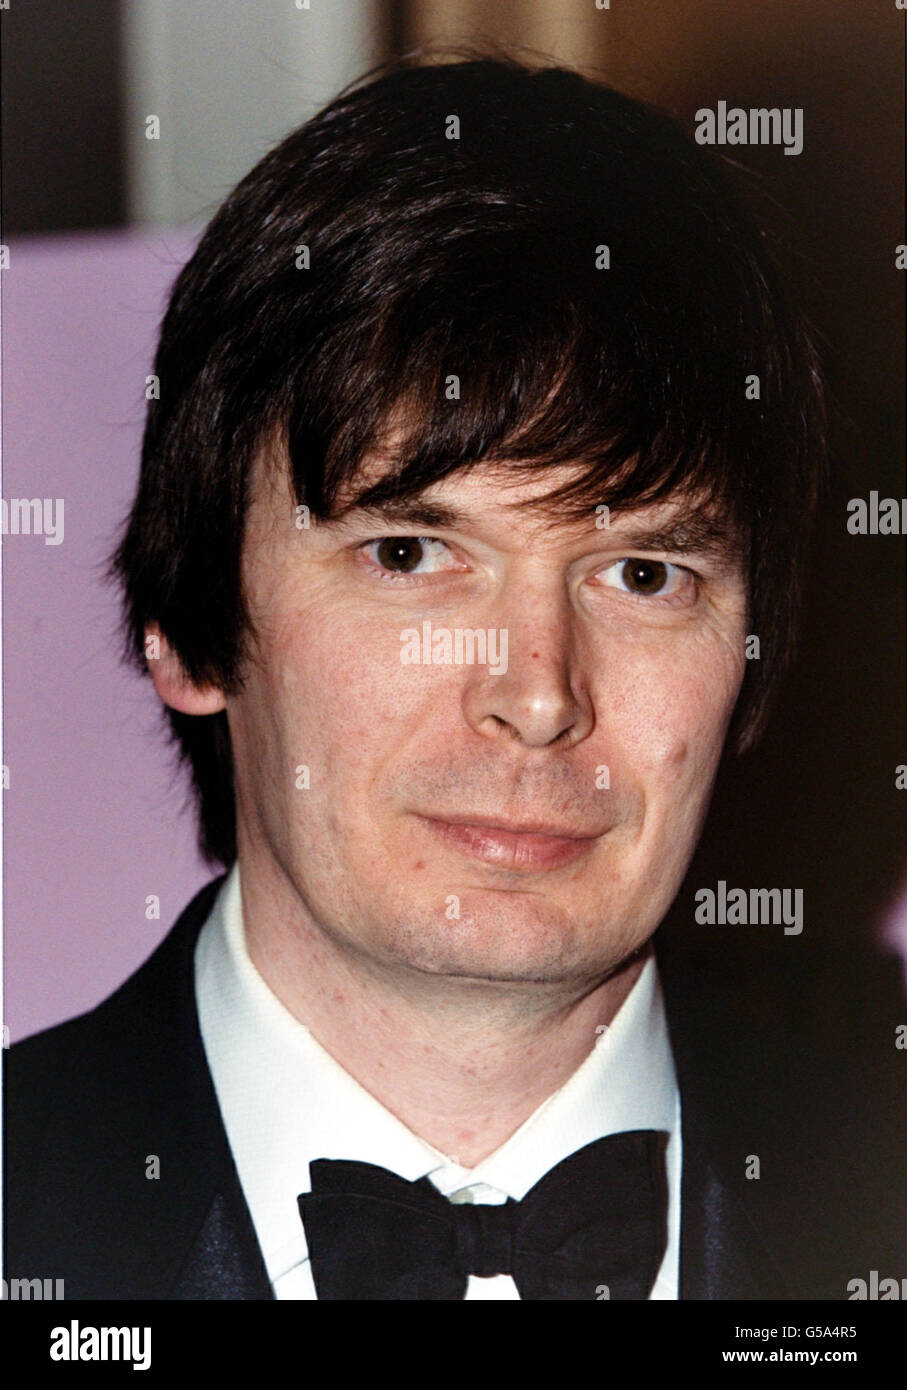 British Bk Awds Ian Rankin - Stock Image